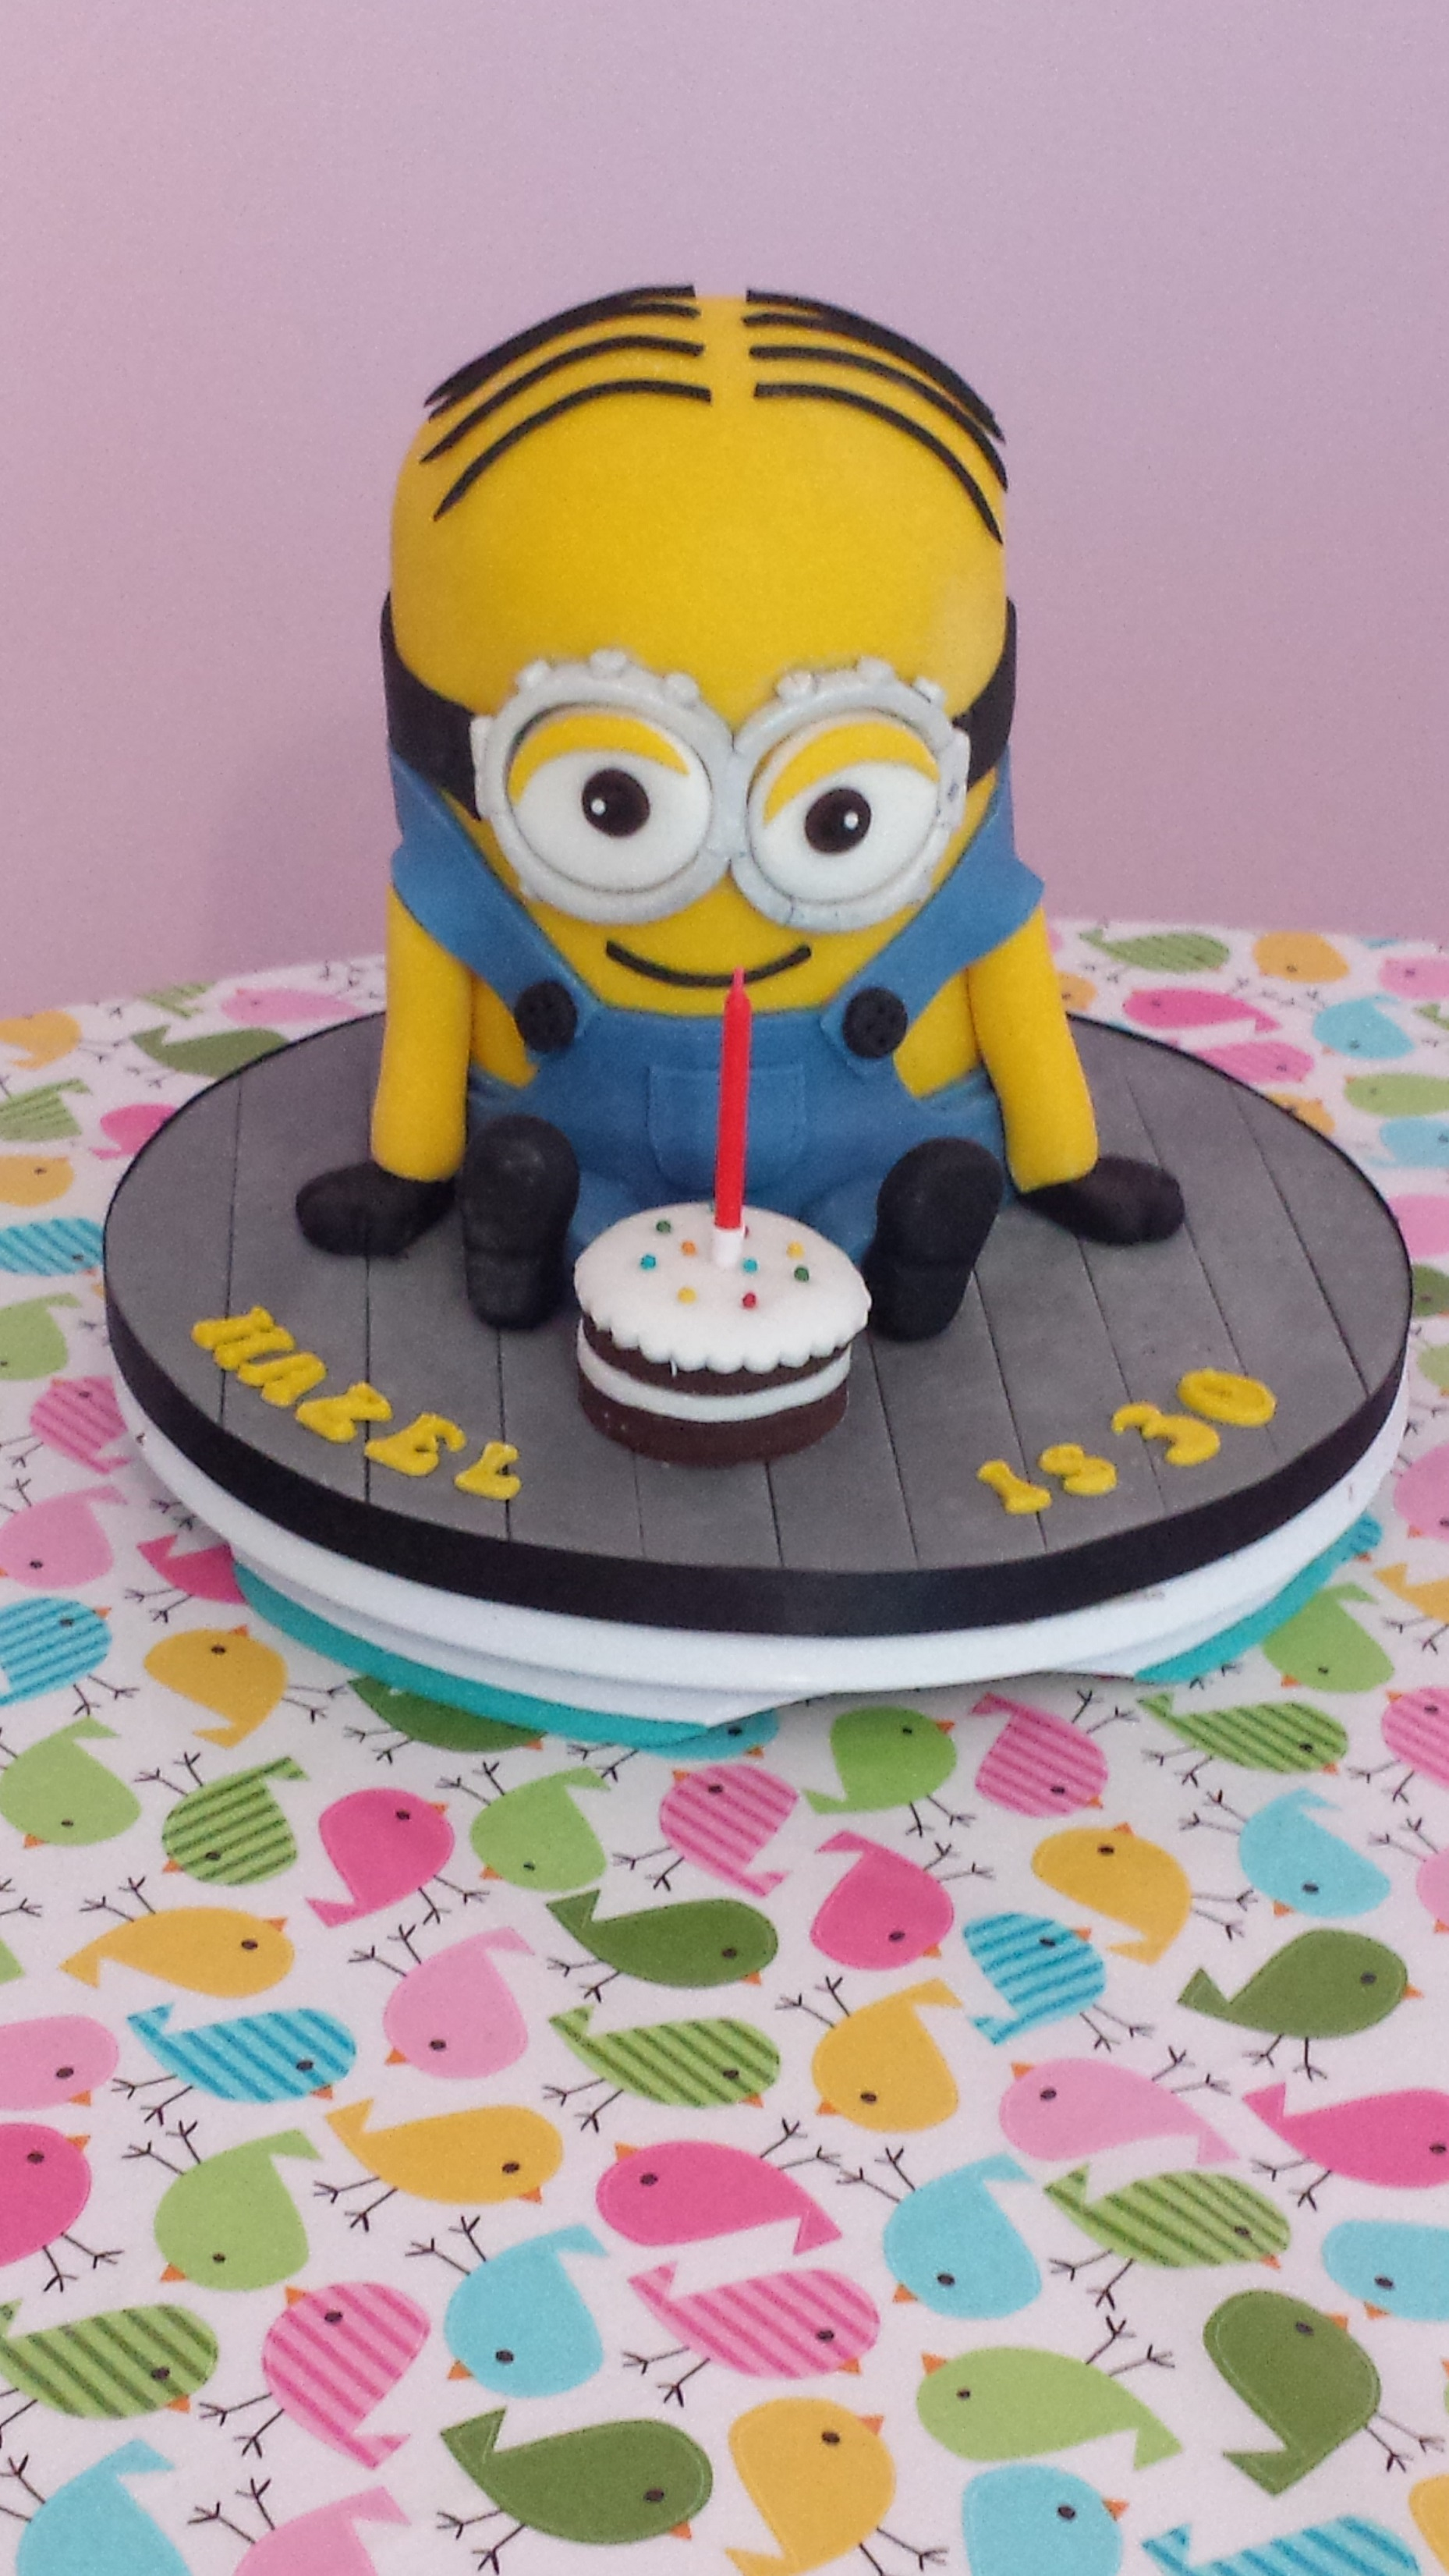 Dave the Minion Cake The Trooper Bake Meah Cake